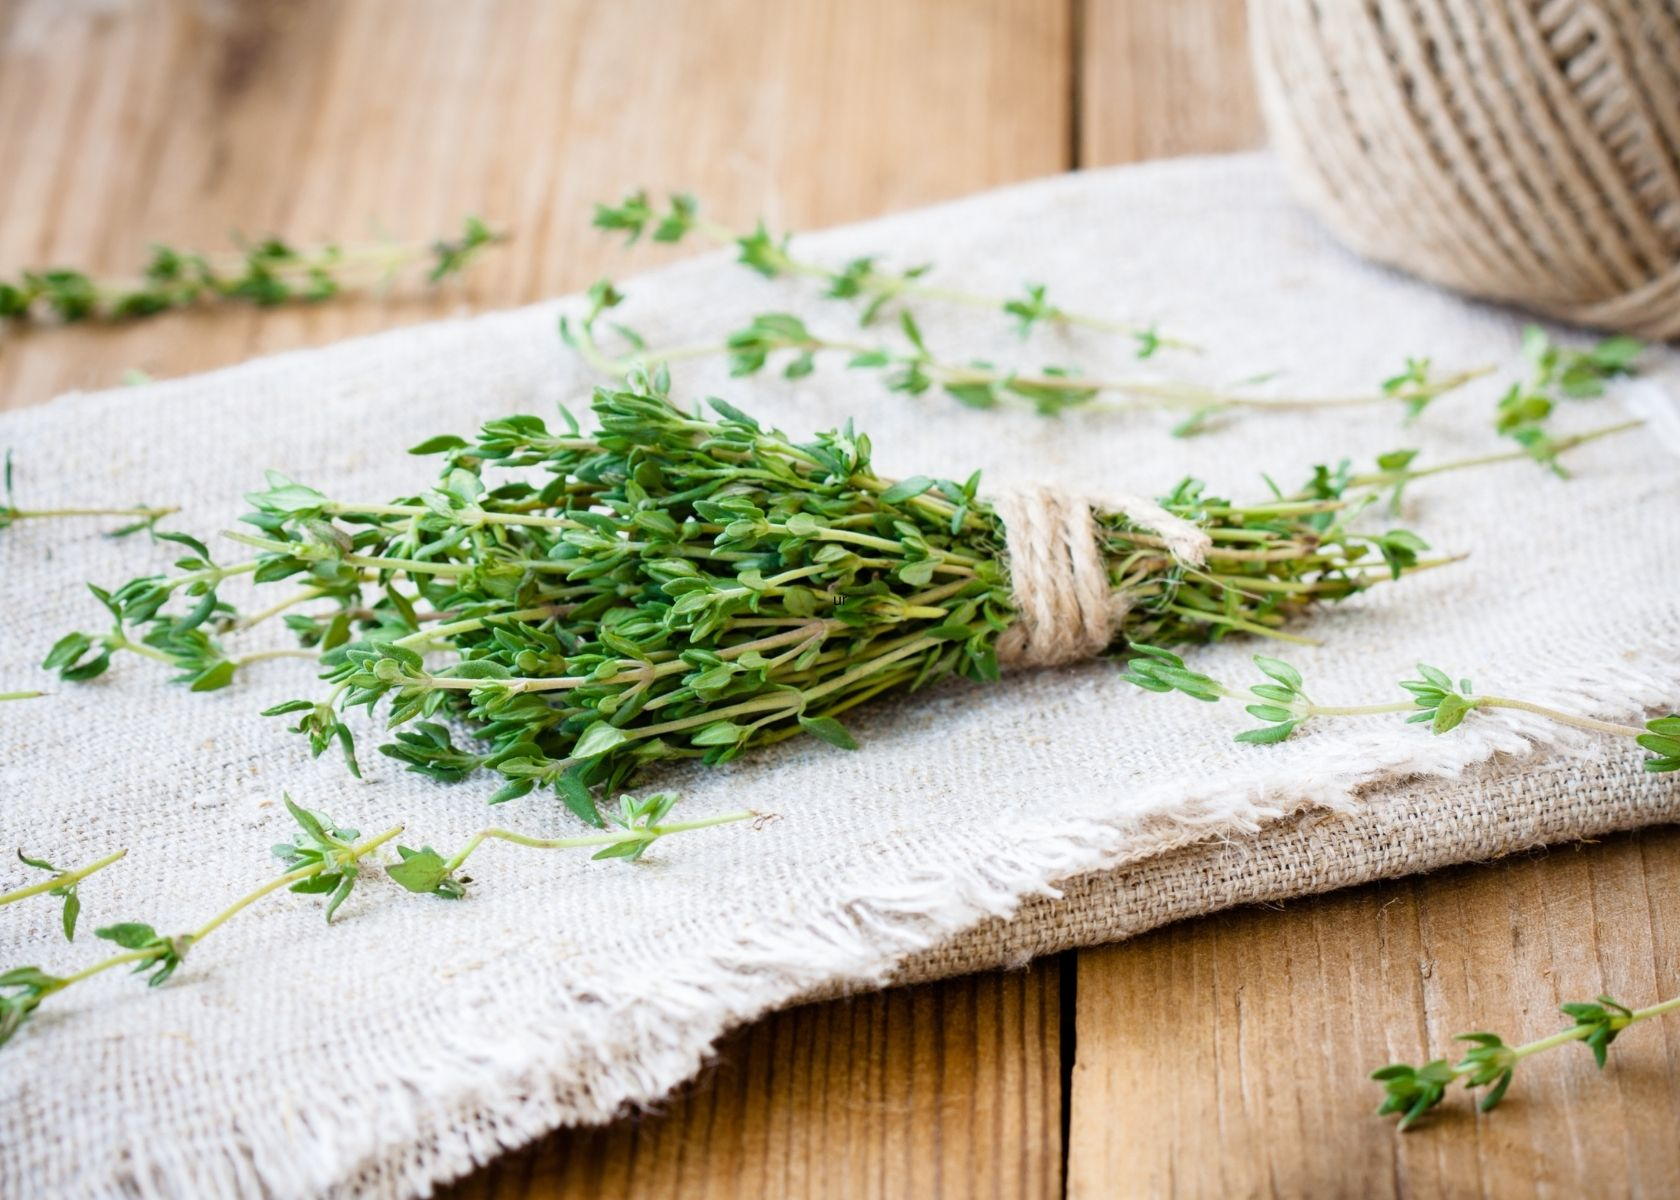 Bundle of thyme in twine and lose stems on burlap fabric.